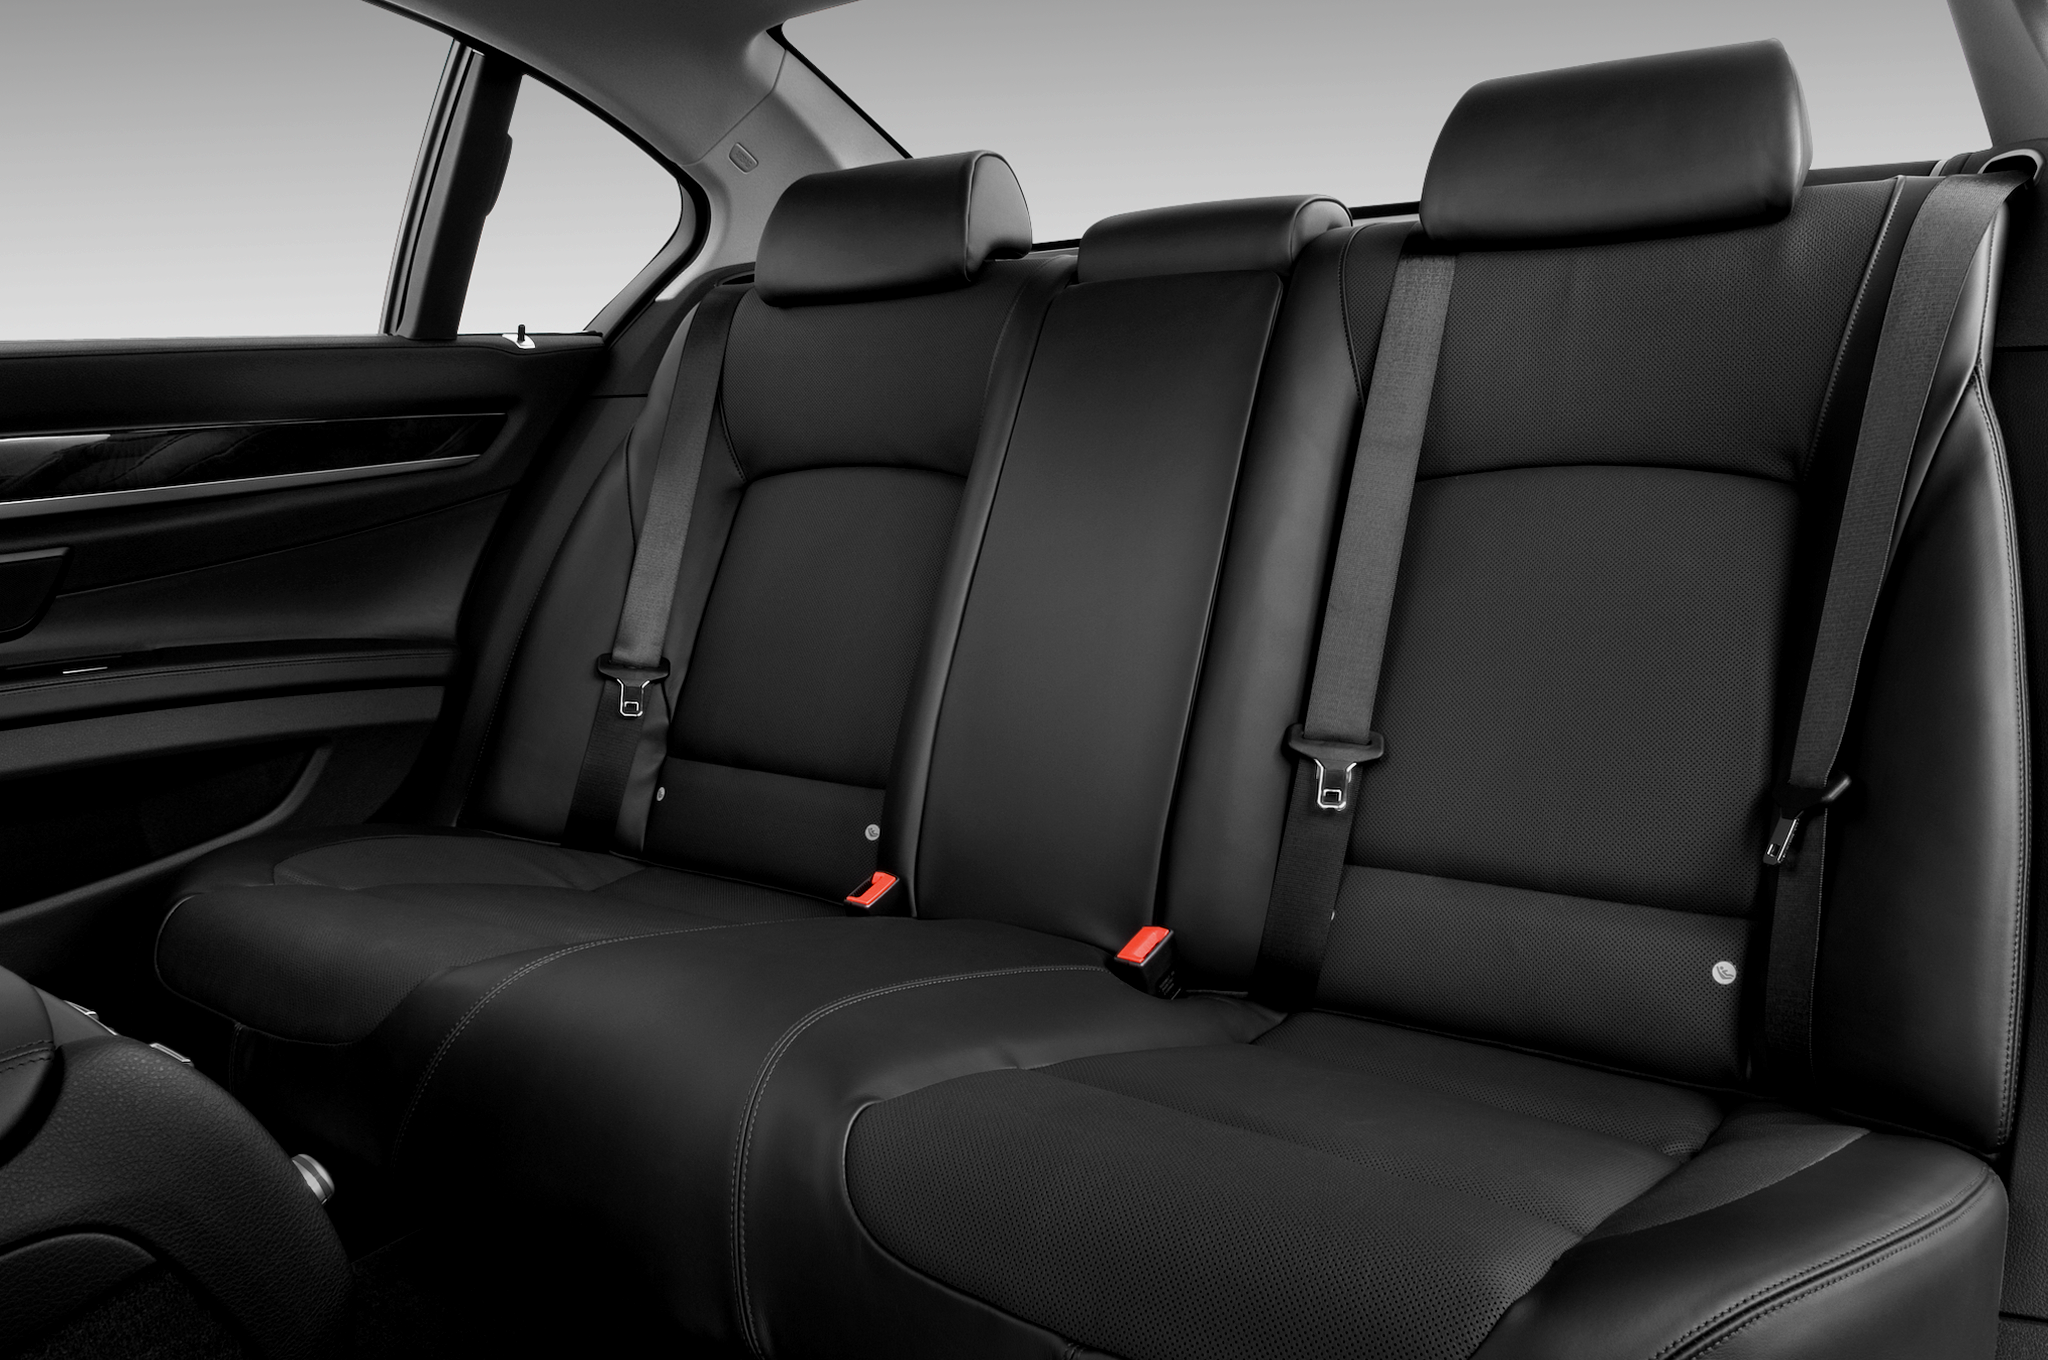 BMW 7-Series Interior Back Seats View Chauffeured Car Services Minneapolis MN / St Paul Minnesota